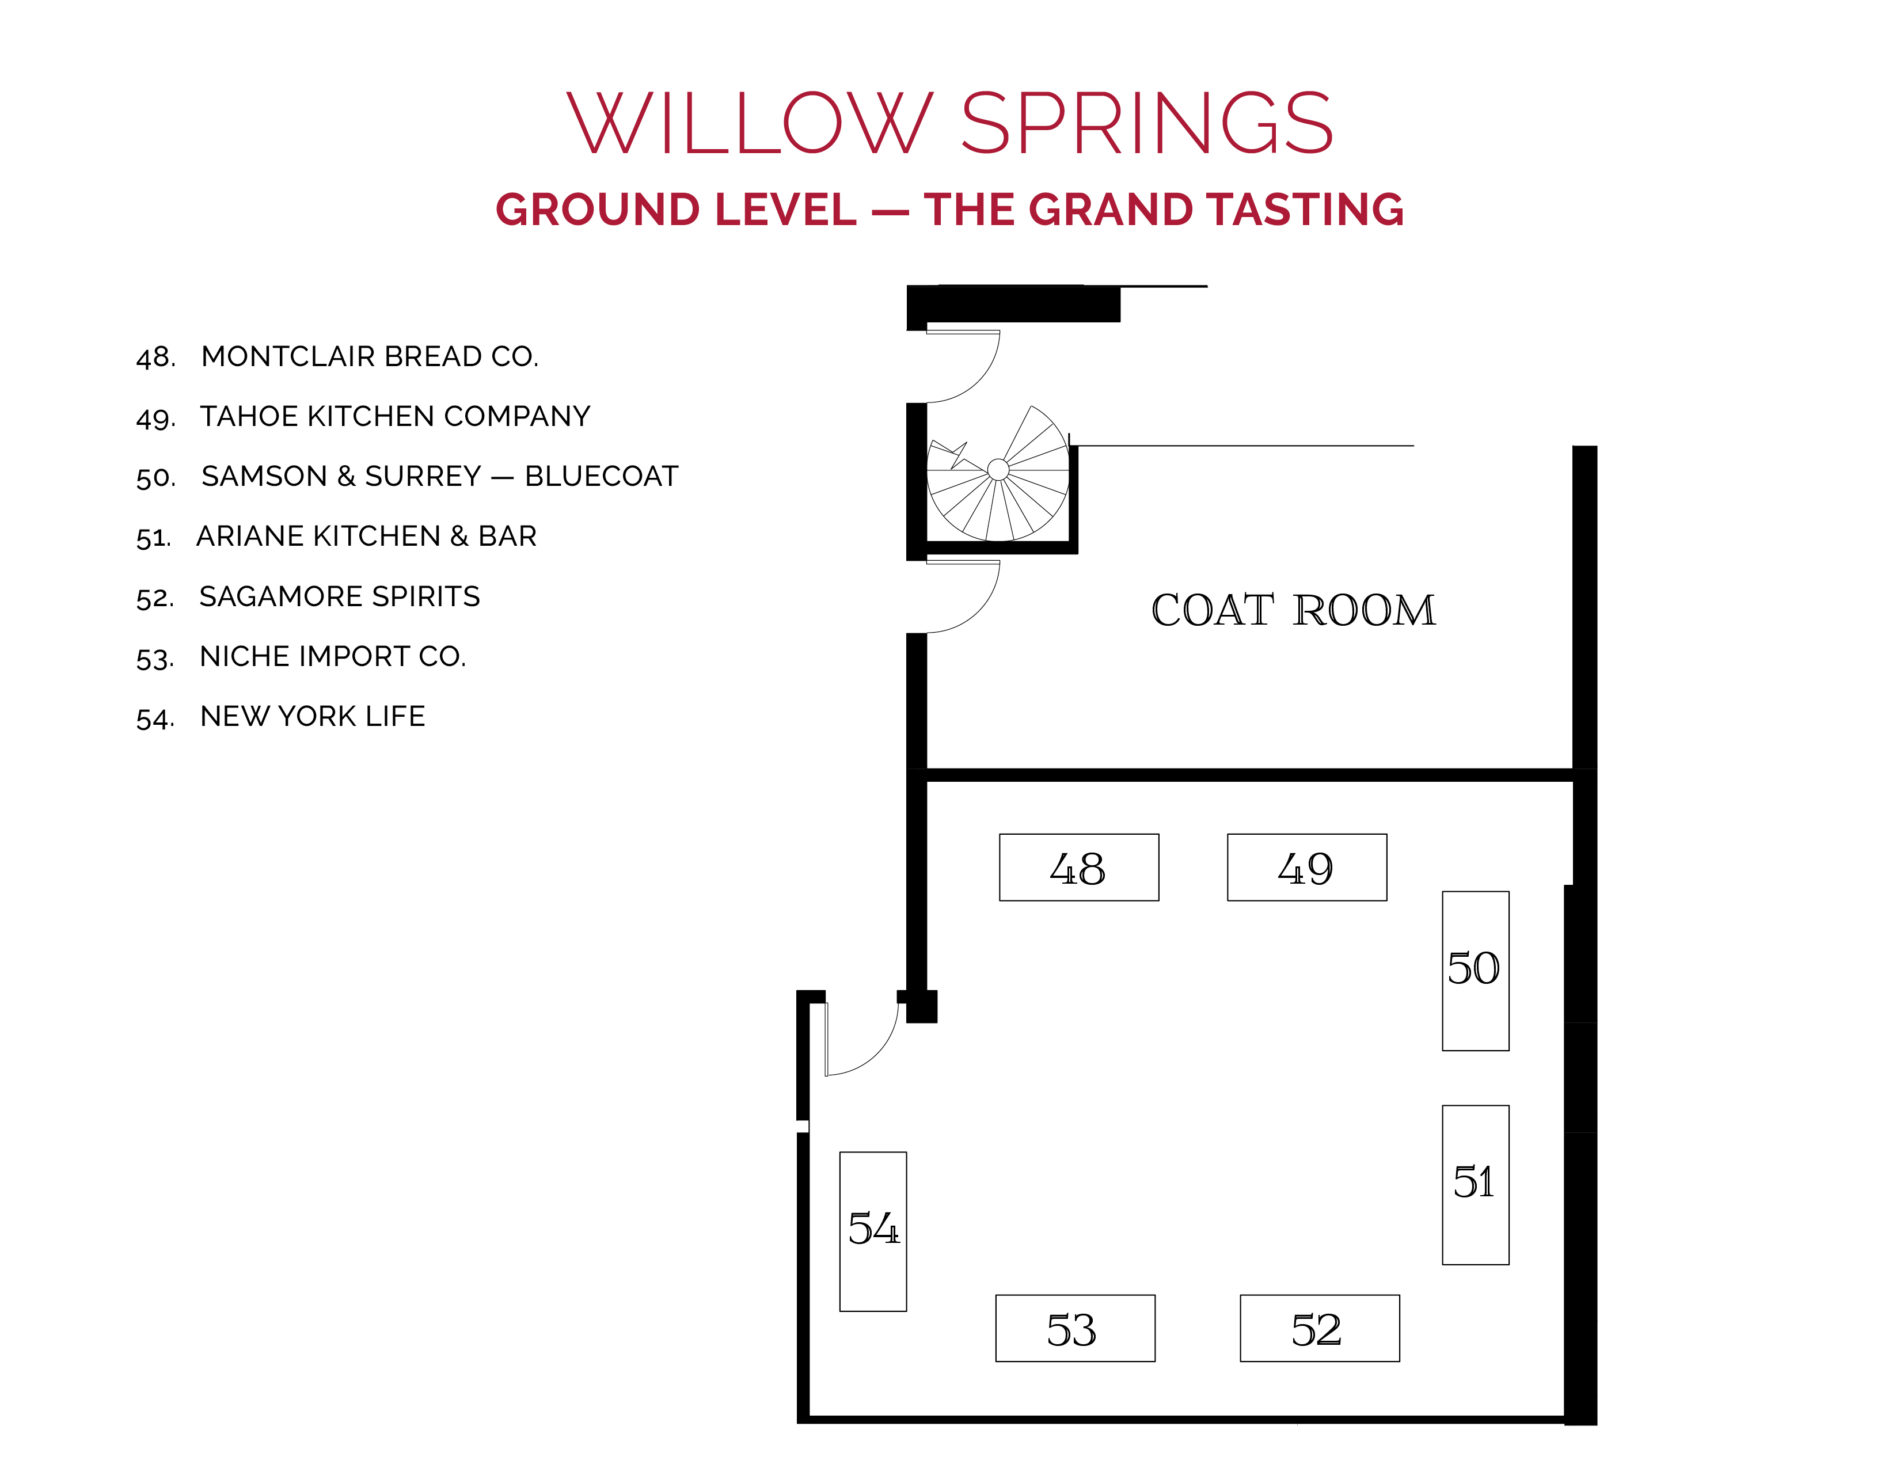 NJWFF Floorplan 2019 Willow Springs